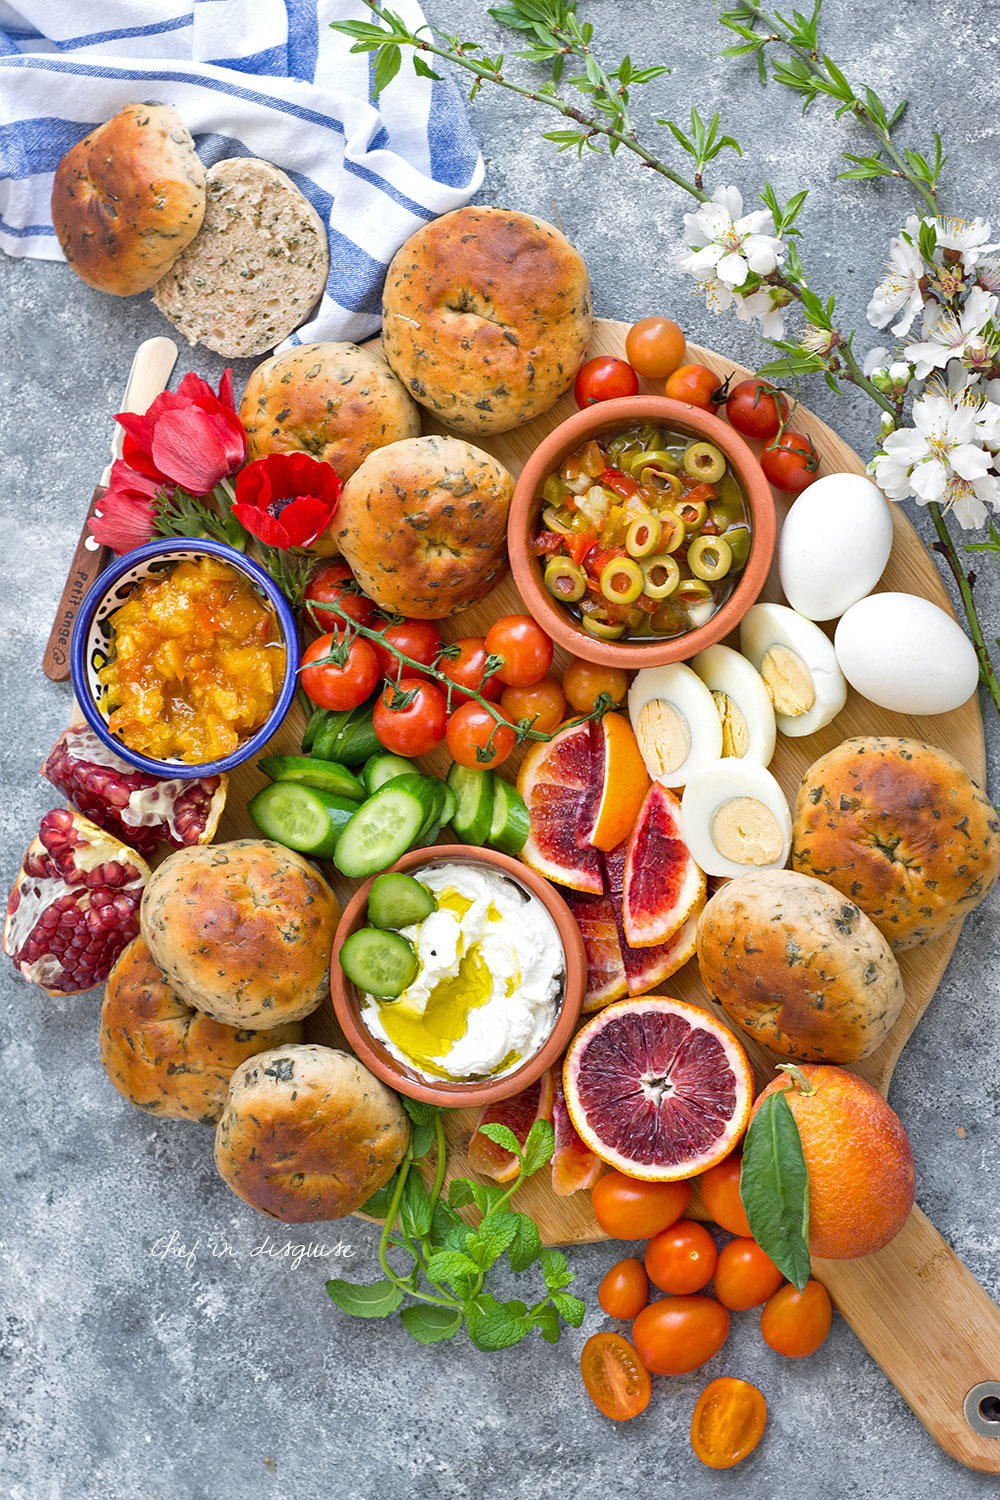 Breakfast platter with zaatar rolls , fruits and eggs